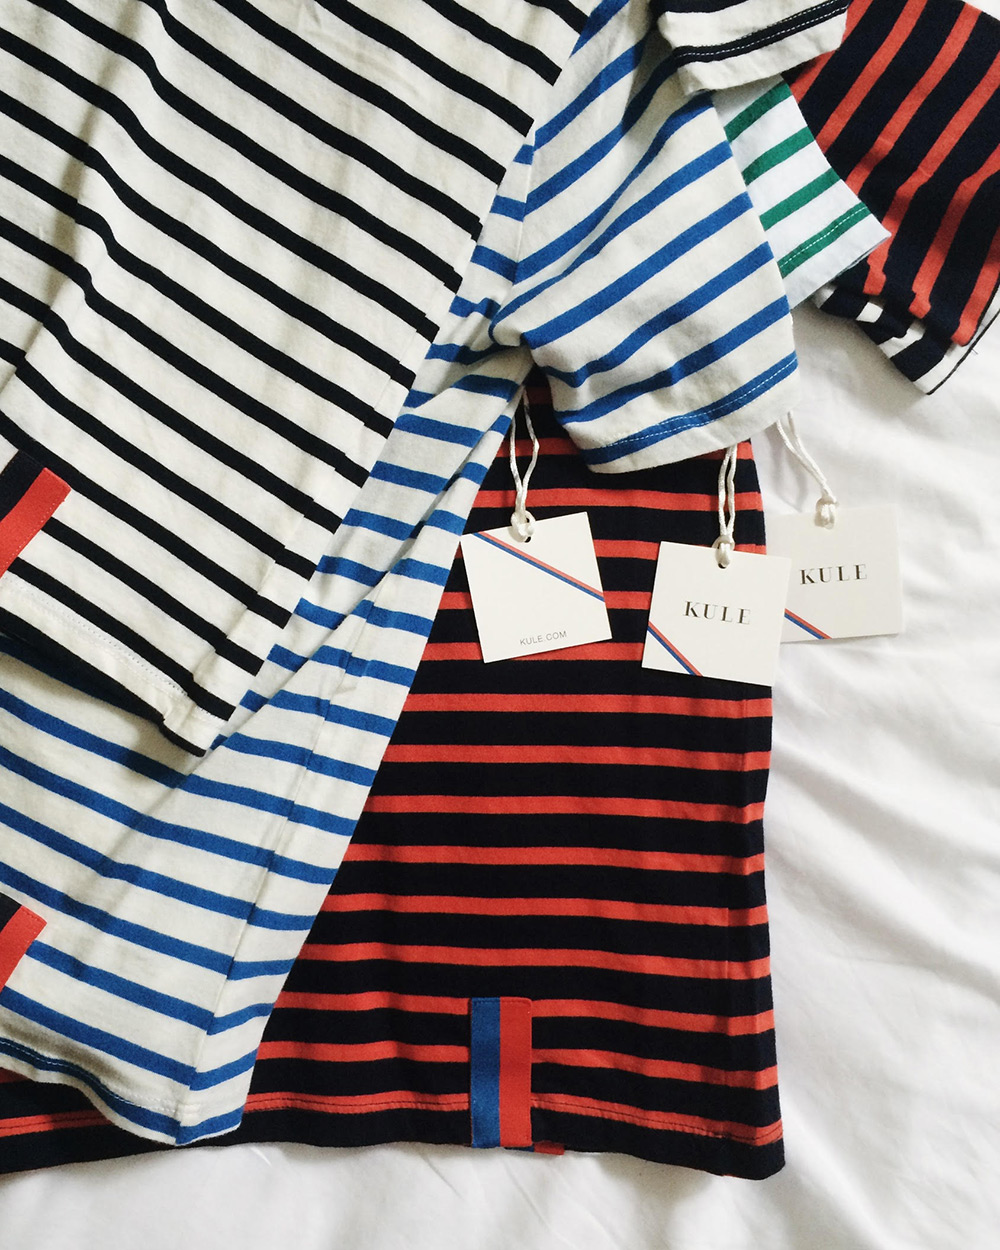 KULE Striped Shirts | Second Floor Flat